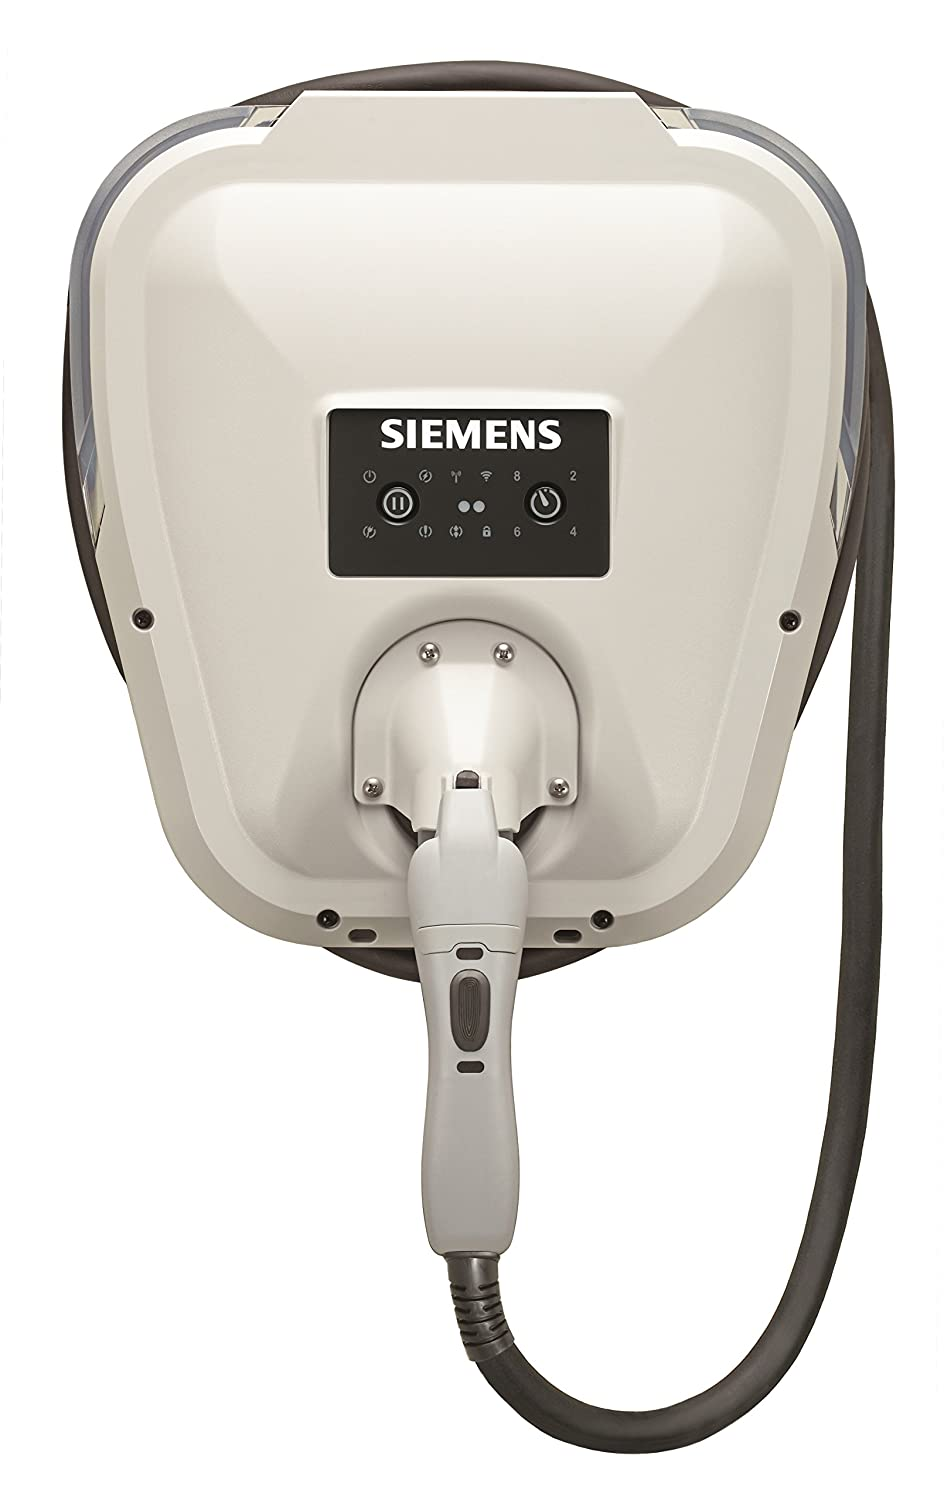 Siemens US2:VC30GRYHW VersiCharge Hard-Wired (VC30GRYHW) : Fast Charging, Easy Installation, Flexible Control, Award Winning, UL Listed, J1772 Compatibility, 14ft Cable, Hard-Wired